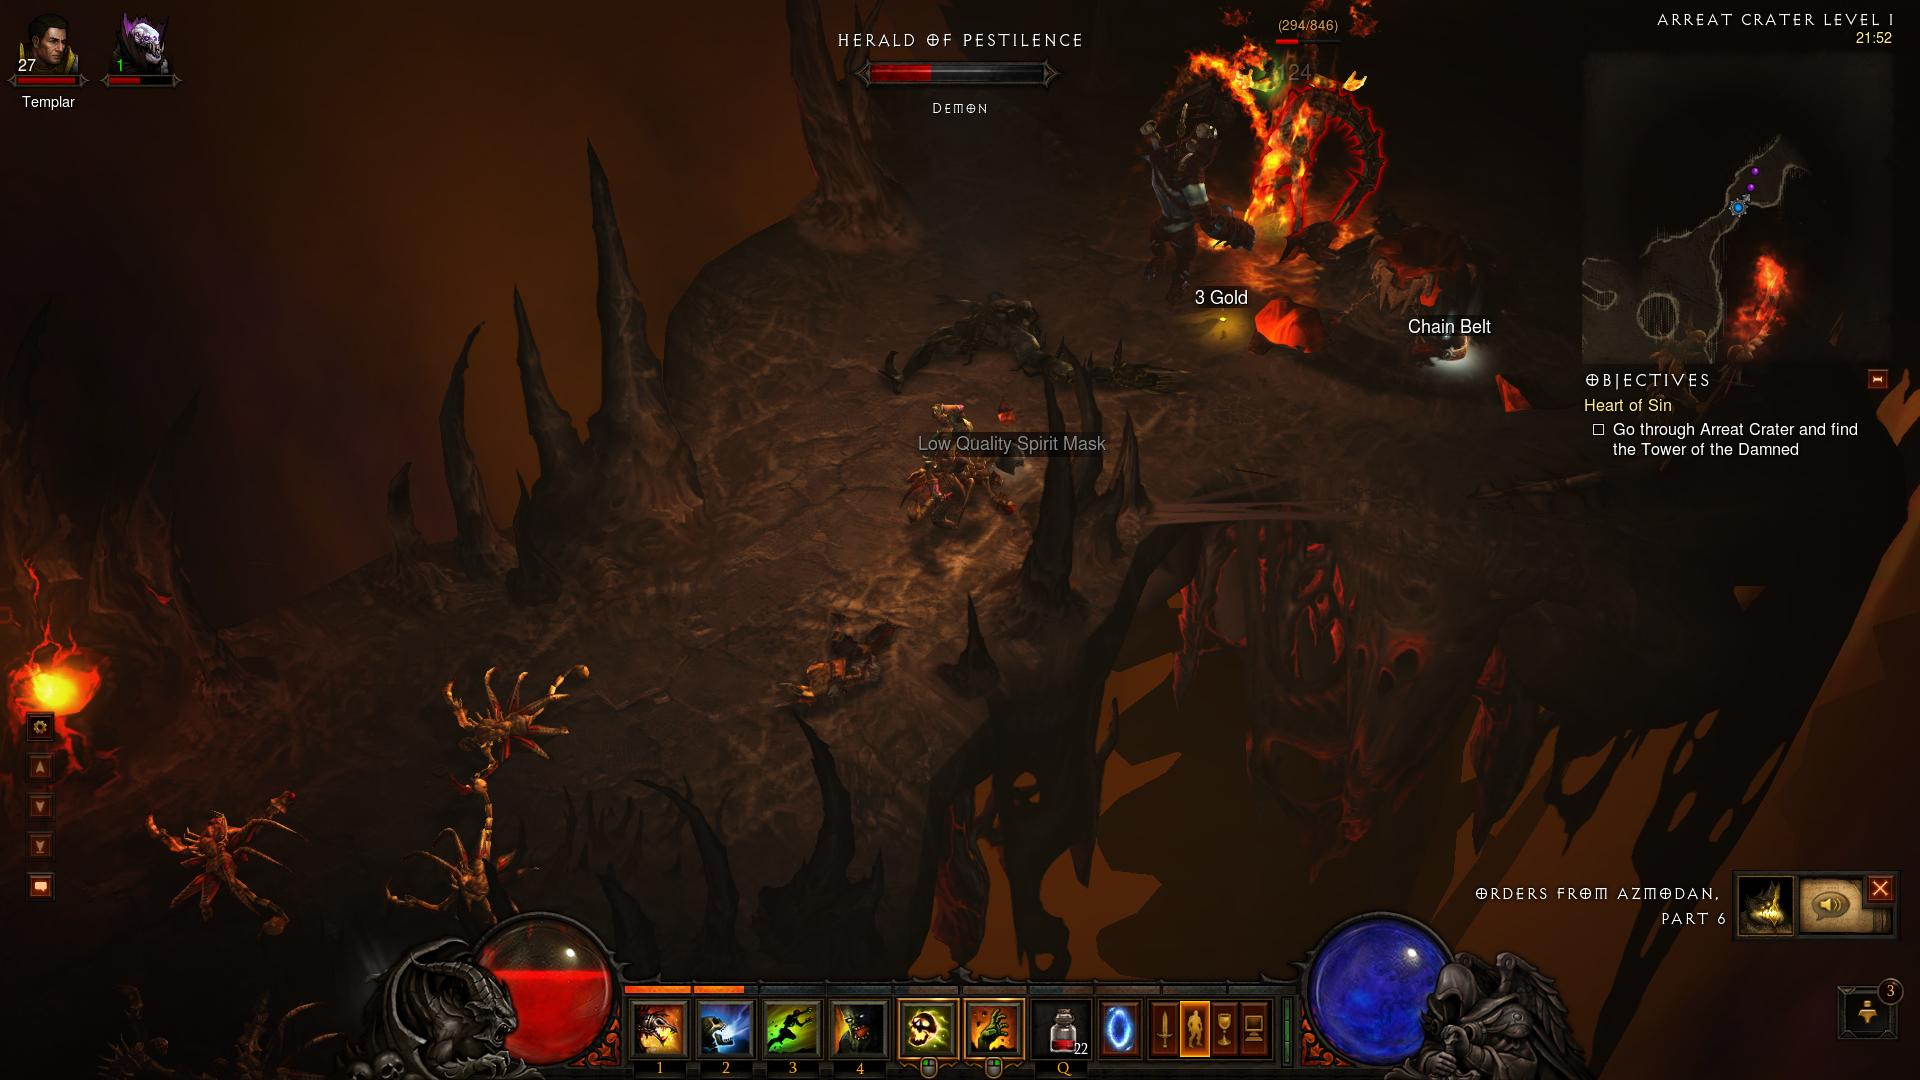 Arreat Crater Level 1 Diablo 3 d3 screenshot